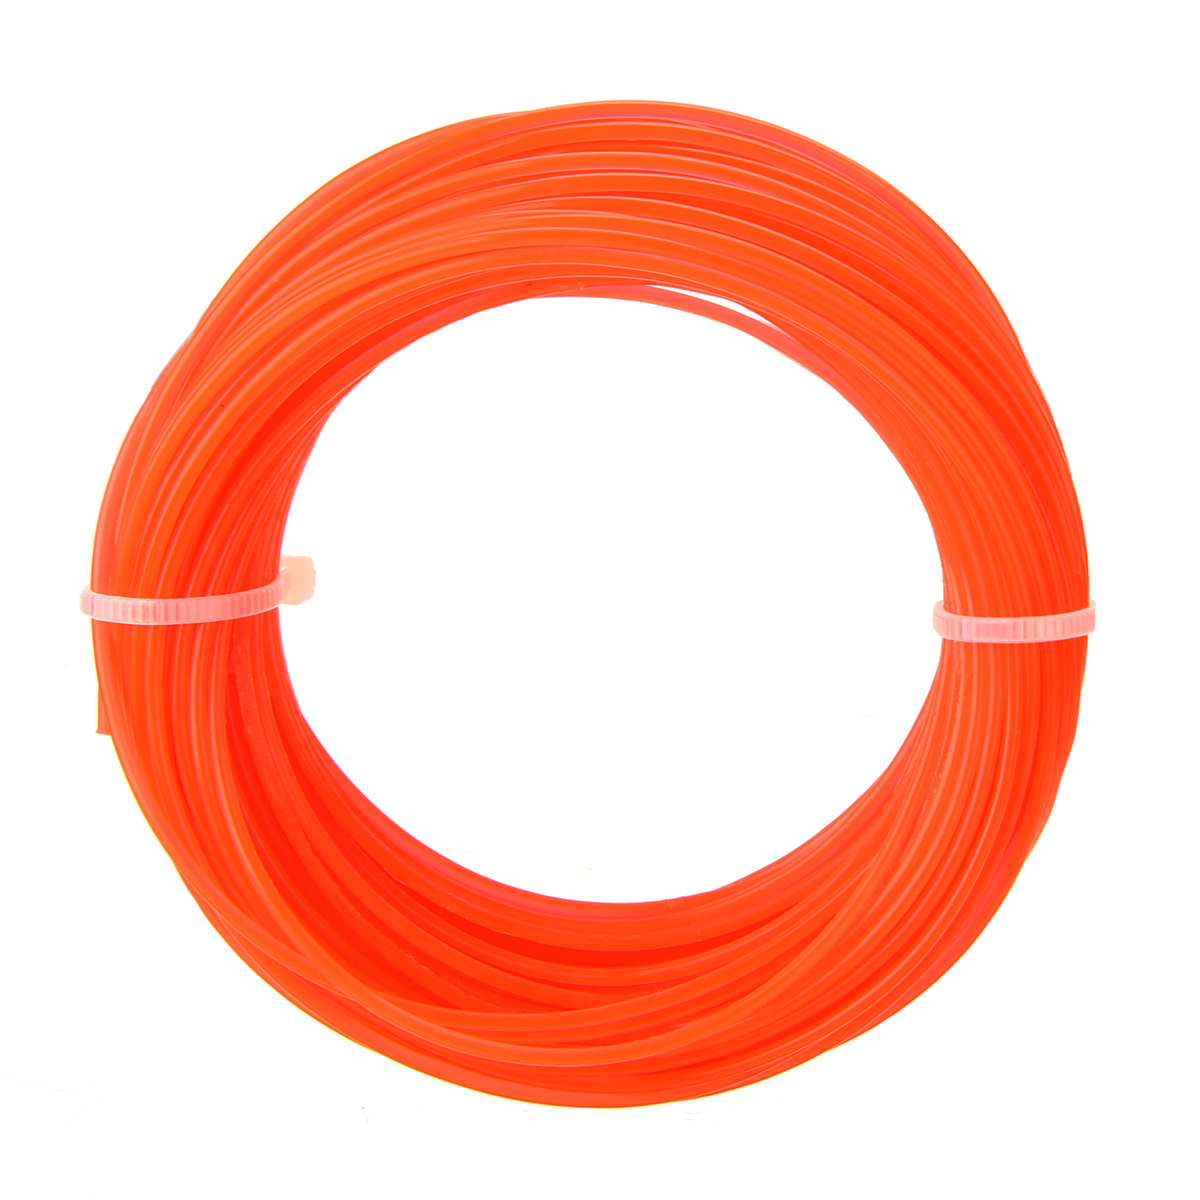 15m*1.25mm Mowing Nylon Trimmer Rope Roll Brush Cutter Strimmer Line Wire For Lawn Mower Accessory